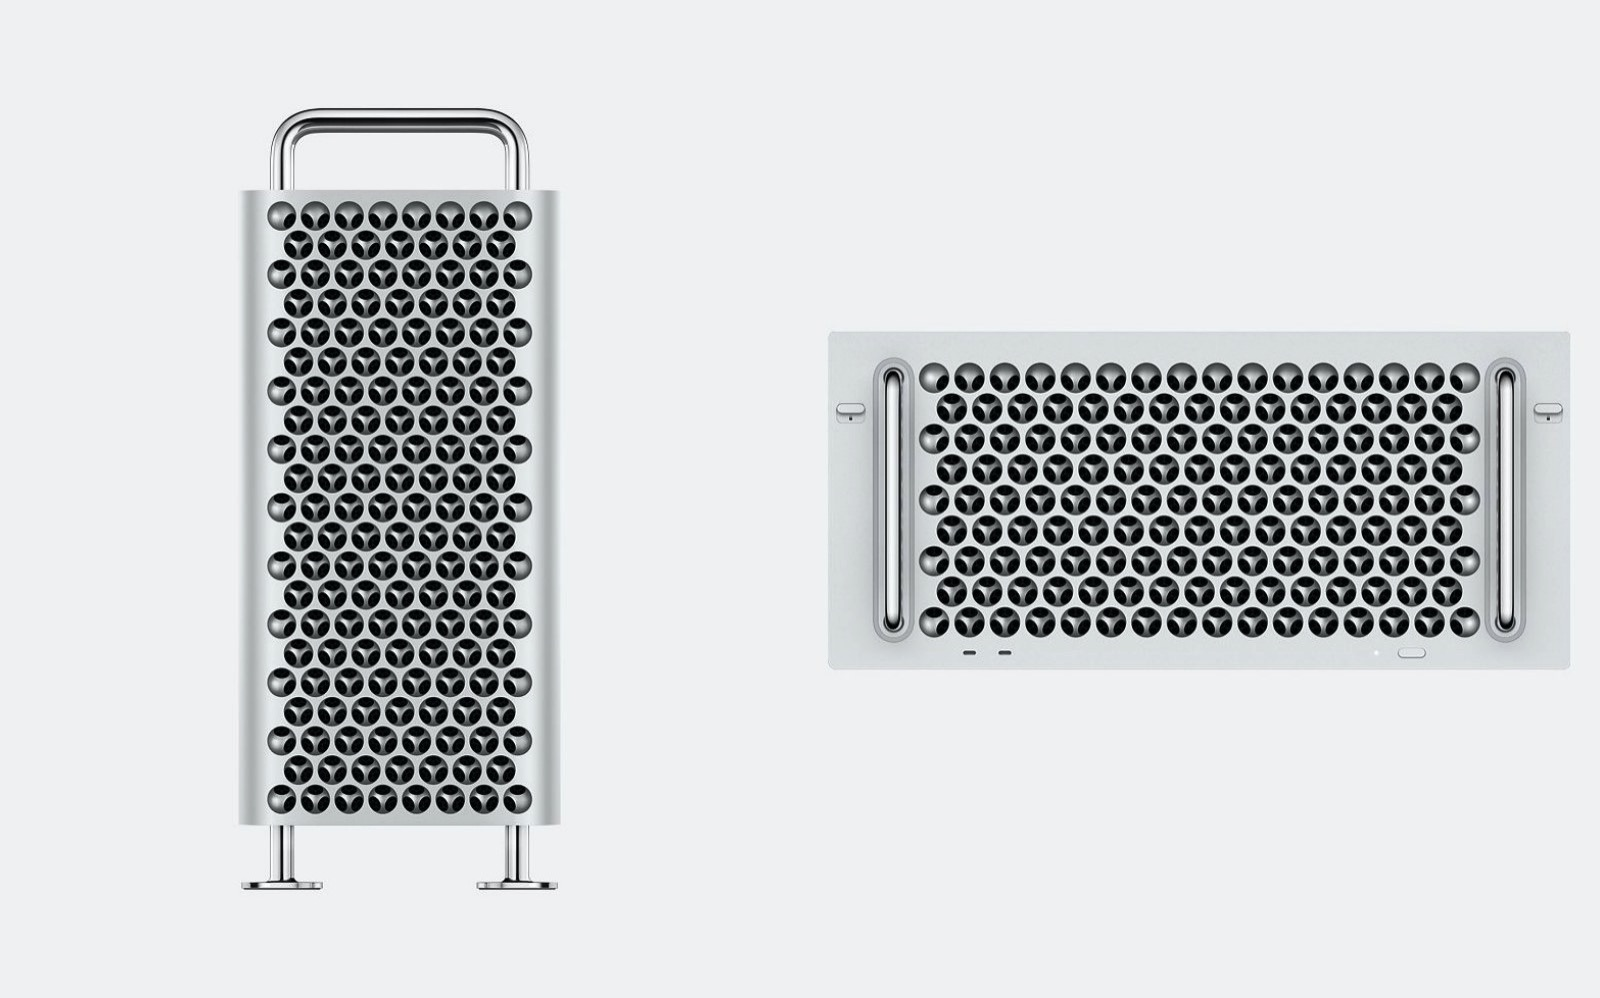 New mac pro 2019 tower and rack